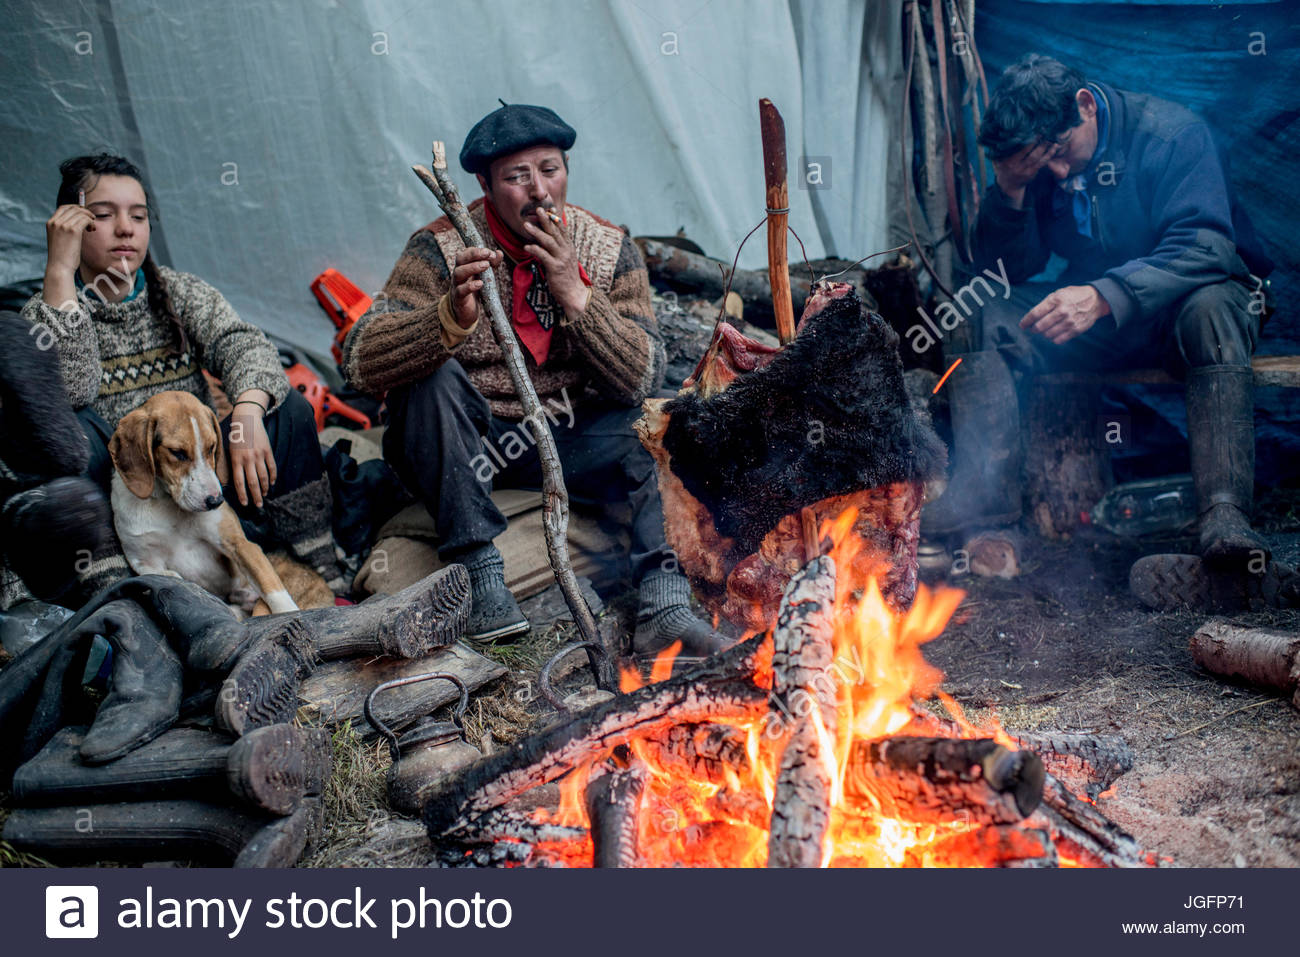 Bagualeros, or cowboys who capture feral livestock, cook meat on a stick from a feral bull. - Stock Image